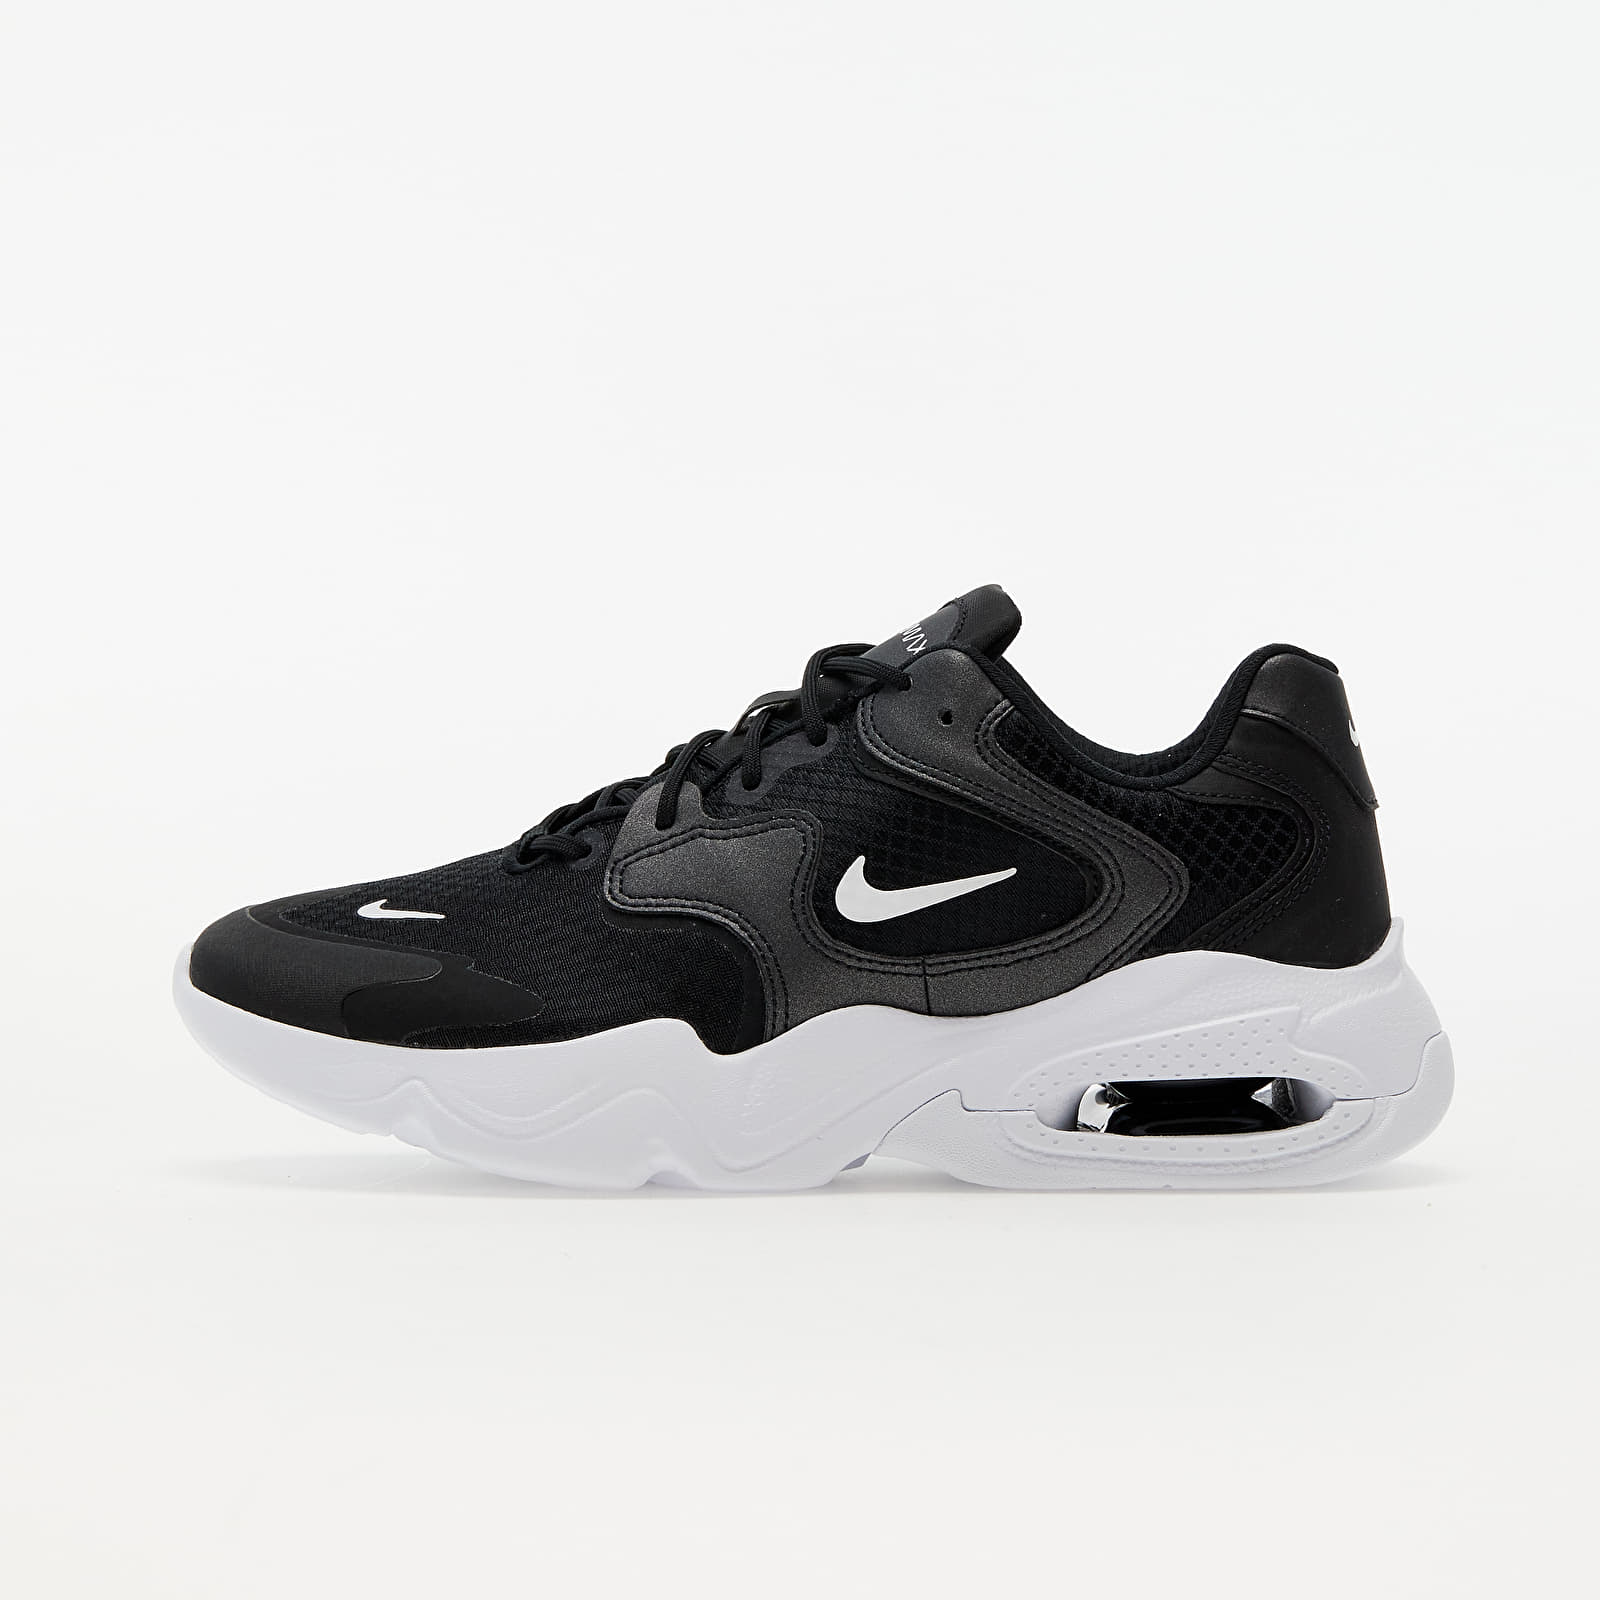 Nike W Air Max 2X Black/ White-Black EUR 35.5